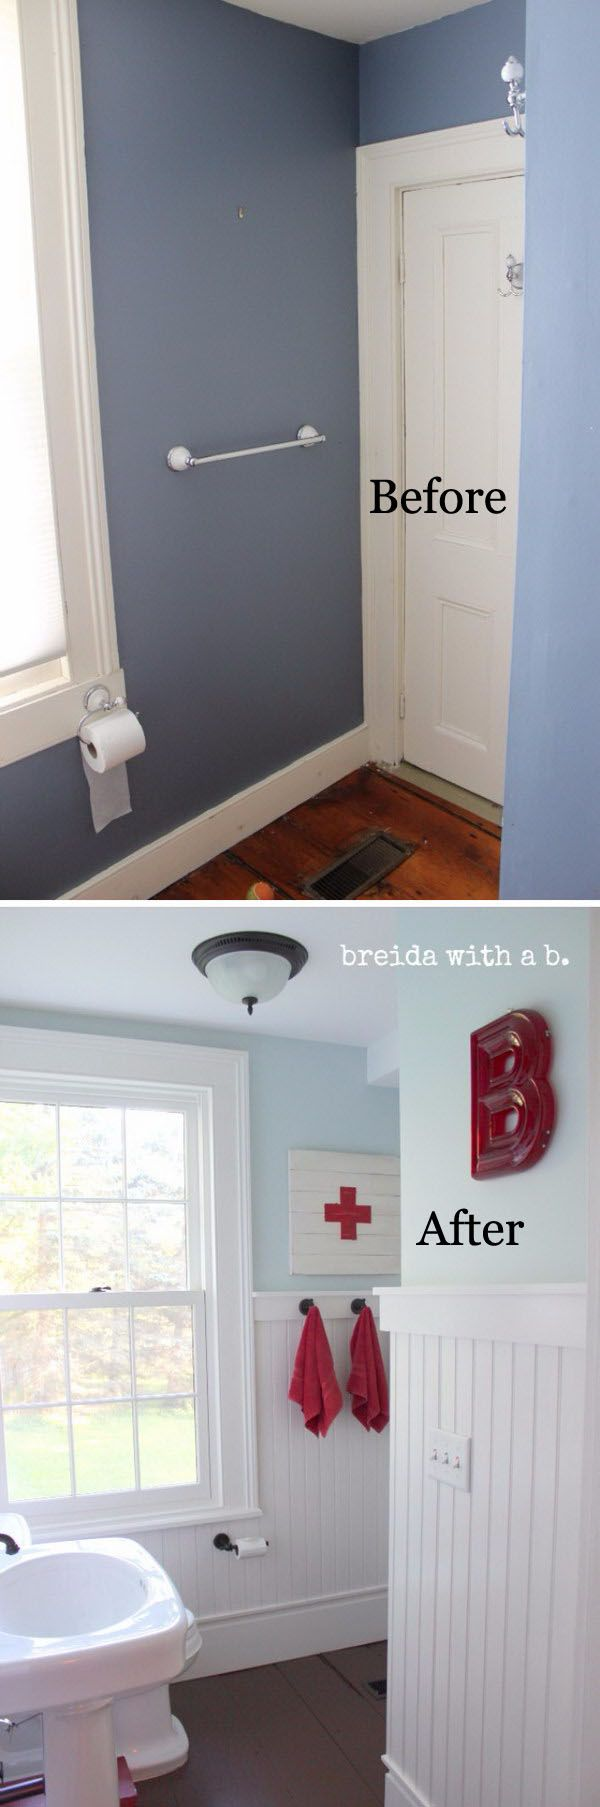 Bathroom Renovation. Looking for gorgeous faucets, vanities, sinks, Shower Heads & panels for your small bathroom see our selection at www.gorgeoustubs.com Bathroom, tiny bathroom, small bathroom, before and after.